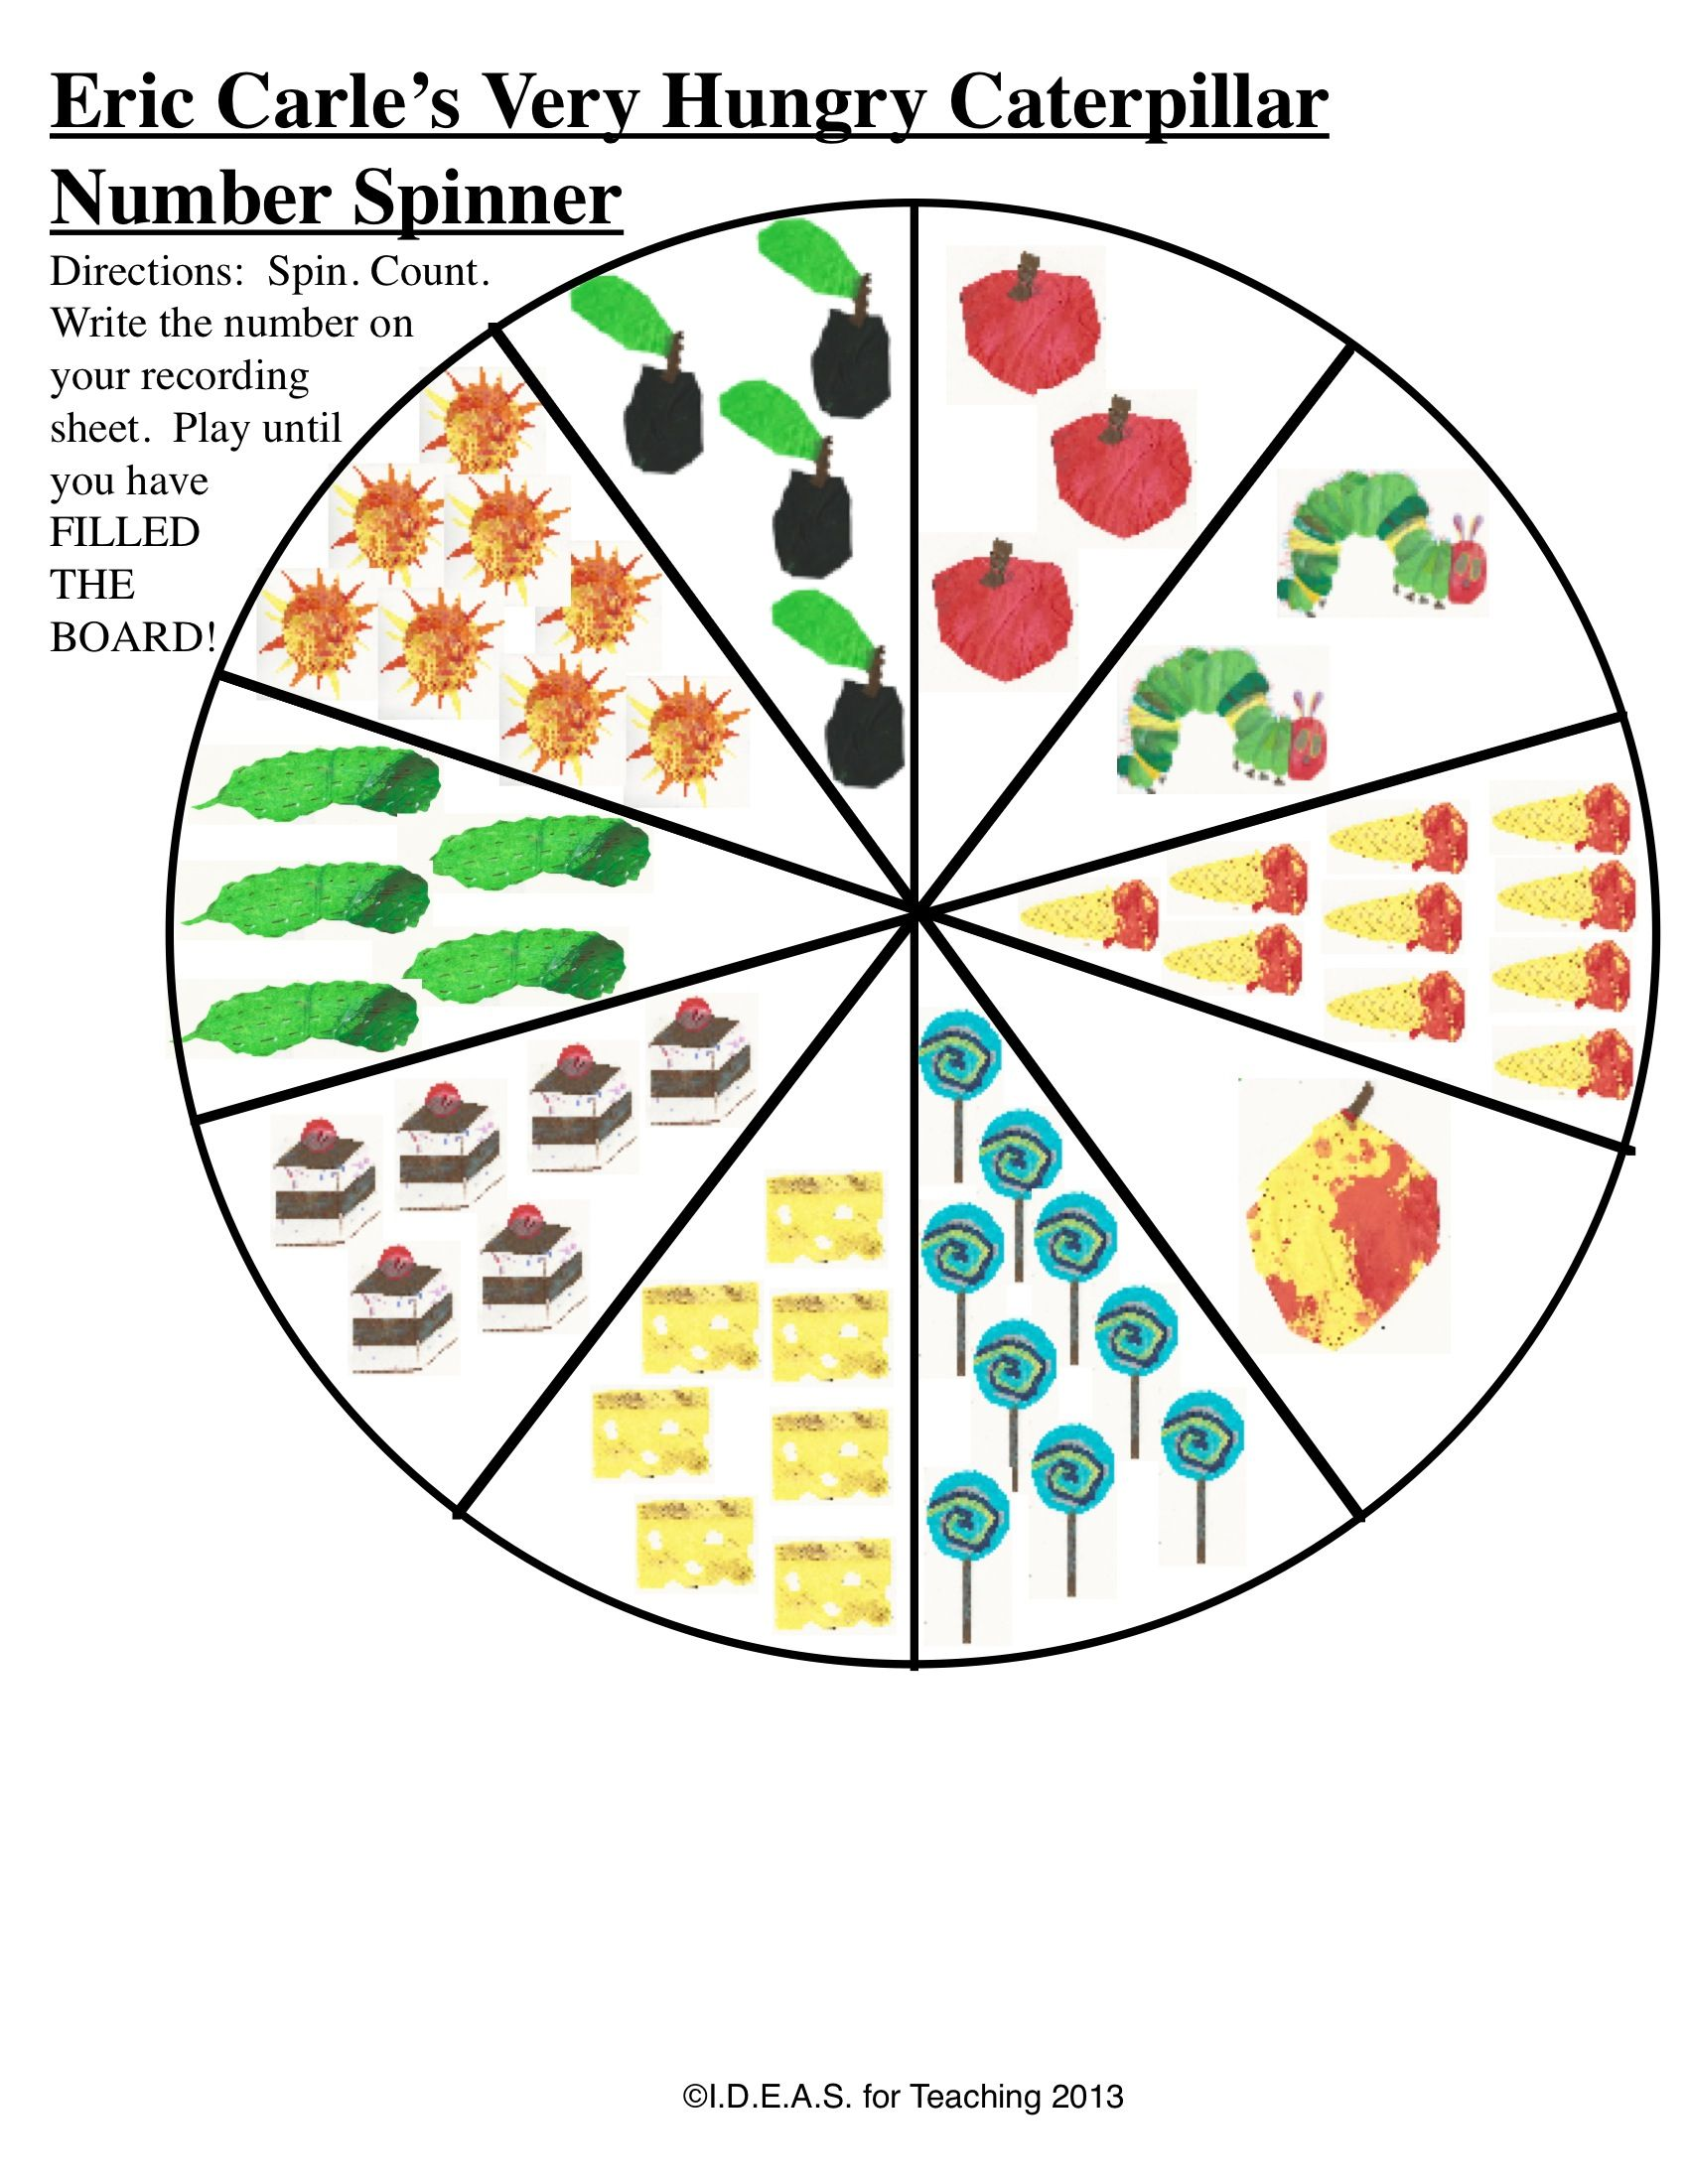 Teacherspayteachers Product Eric Carle Number Race In This Active Game